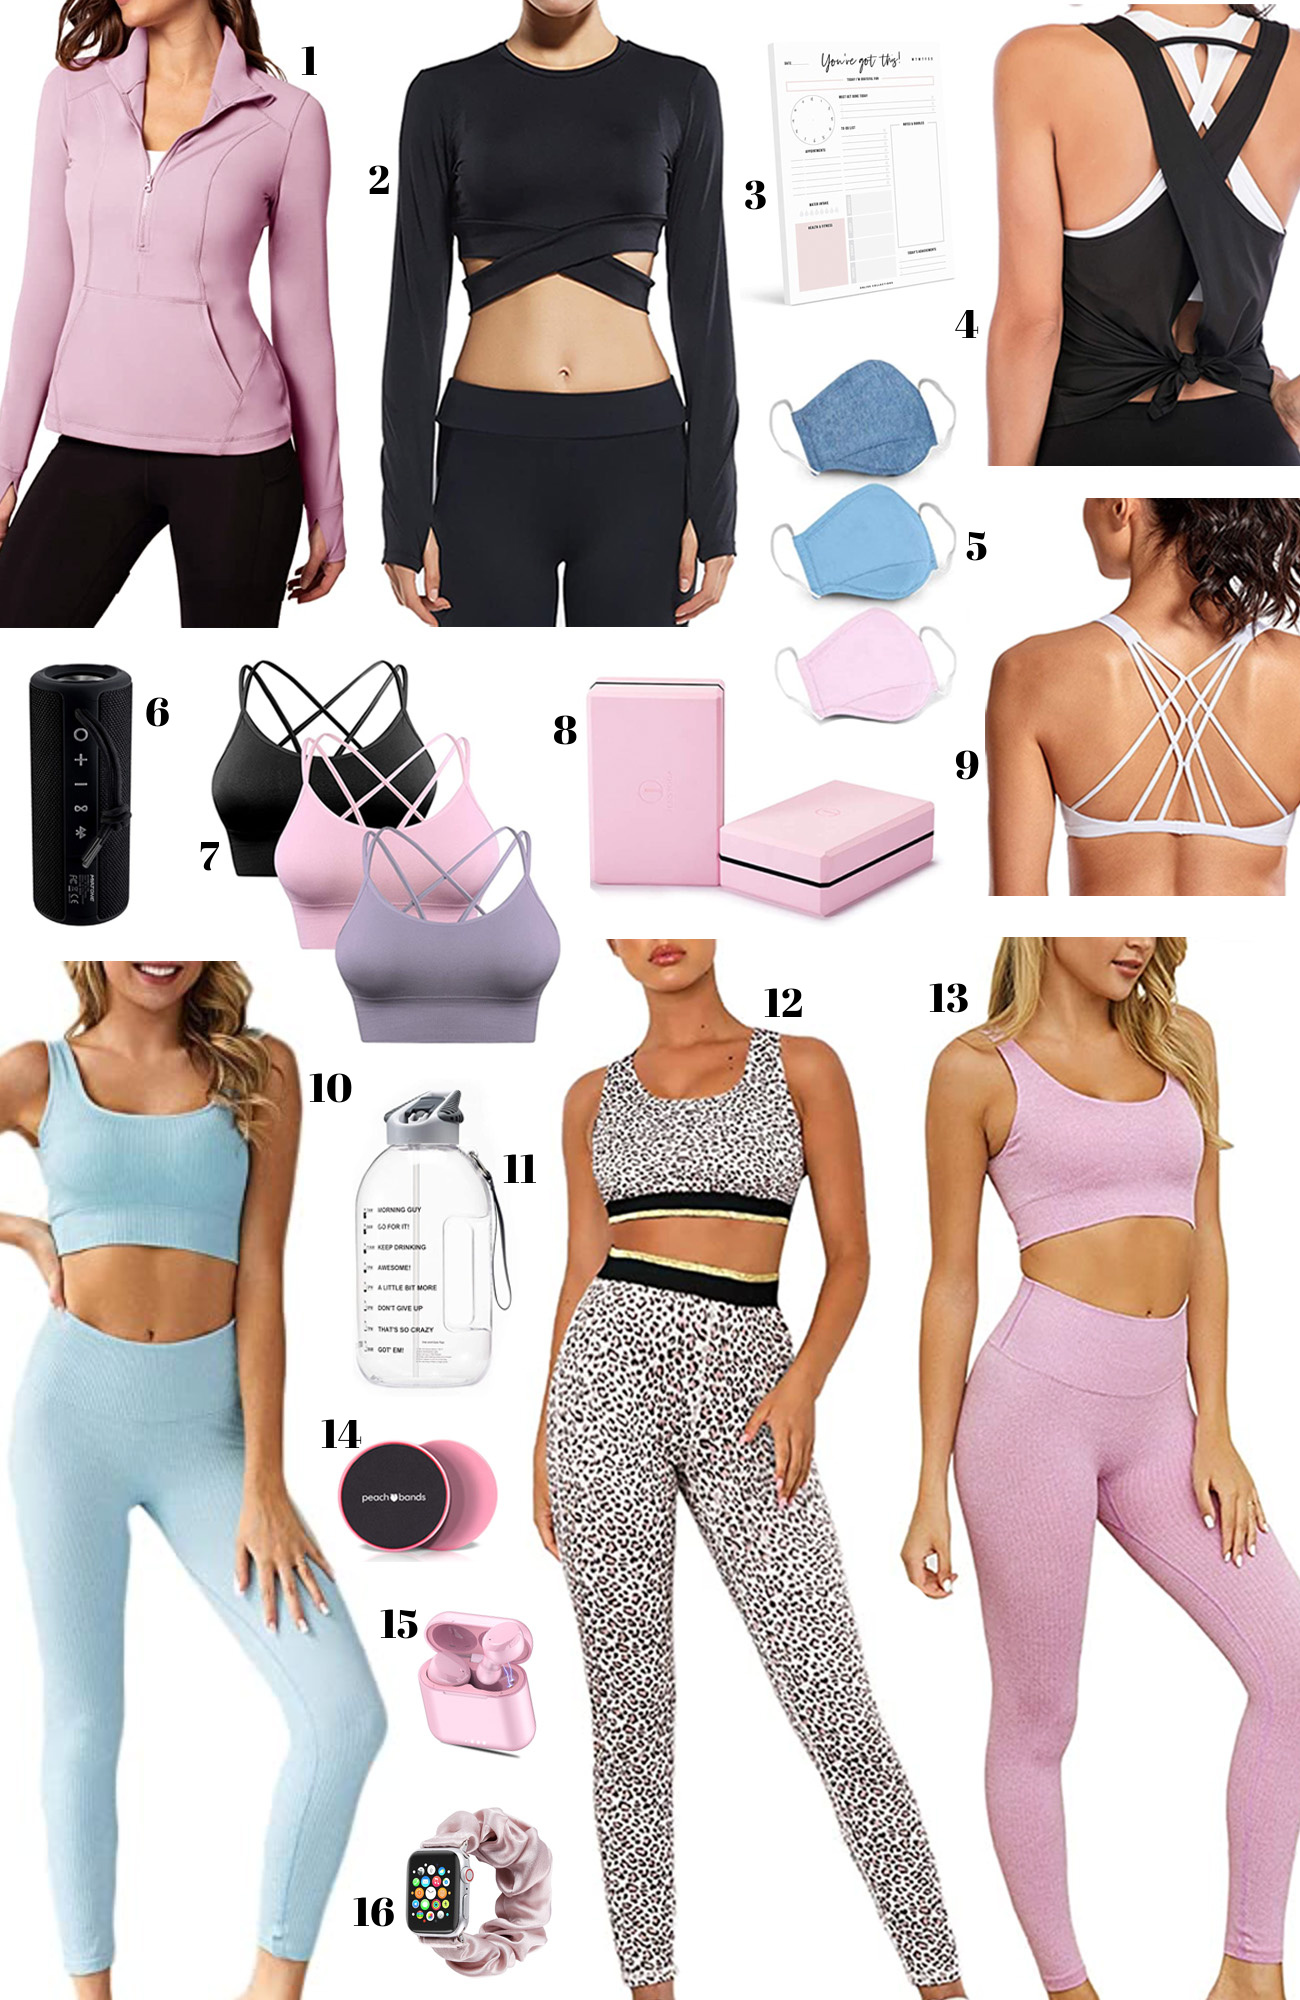 workout clothing | athleisure | workout clothes | running shirt | sports bra | yoga pants | yoga mat